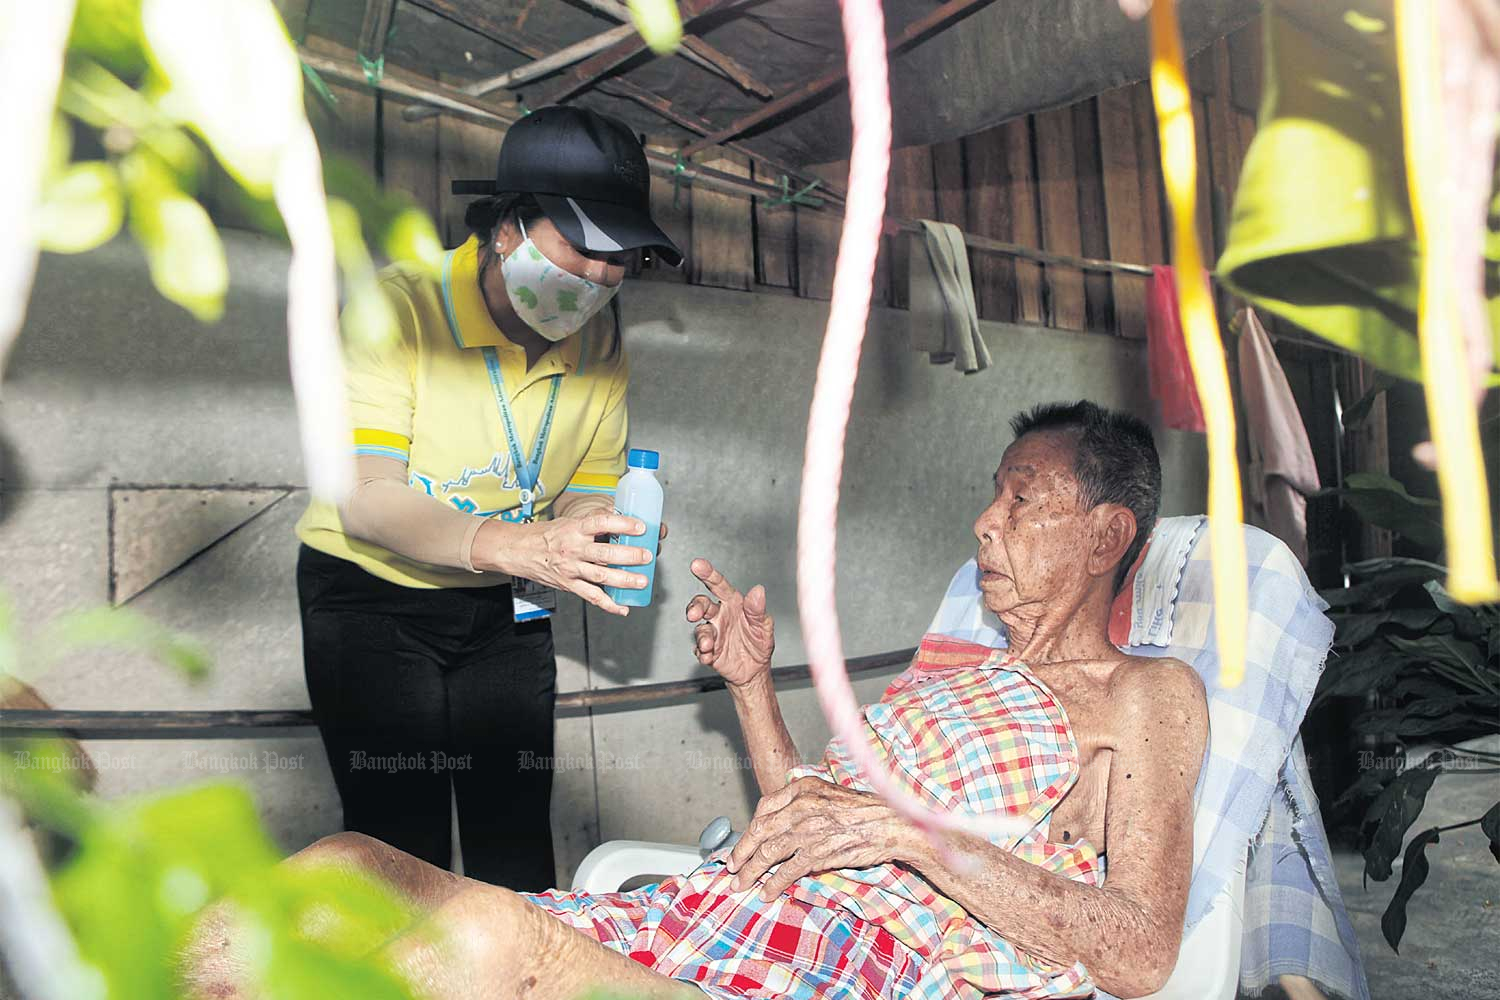 Not for drinking: An official from Dusit district hands a bottle of ethyl alcohol to an elderly resident in Sam Sen community located in Bangkok as a part of campaign to raise awareness about social distancing and personal hygiene to combat the Covid-19 disease. (Photo by Nutthawat Wicheanbut)